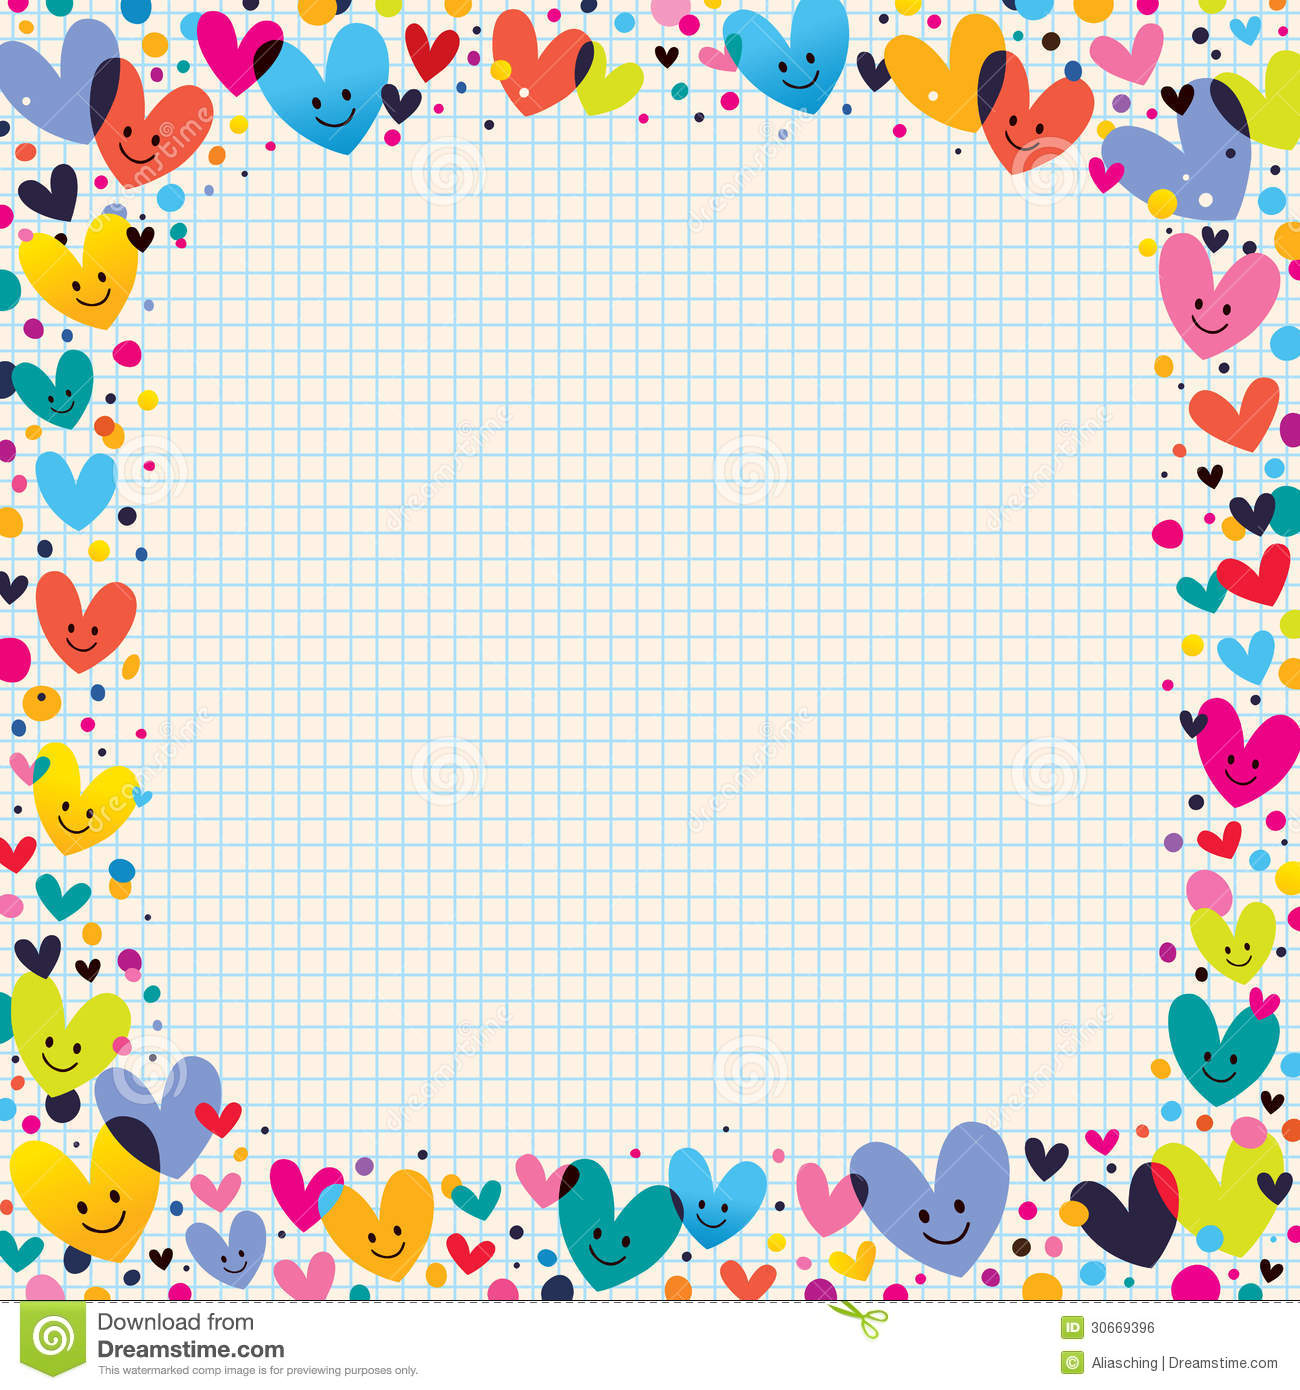 17 Colorful Border For Paper Designs Images Free Owl